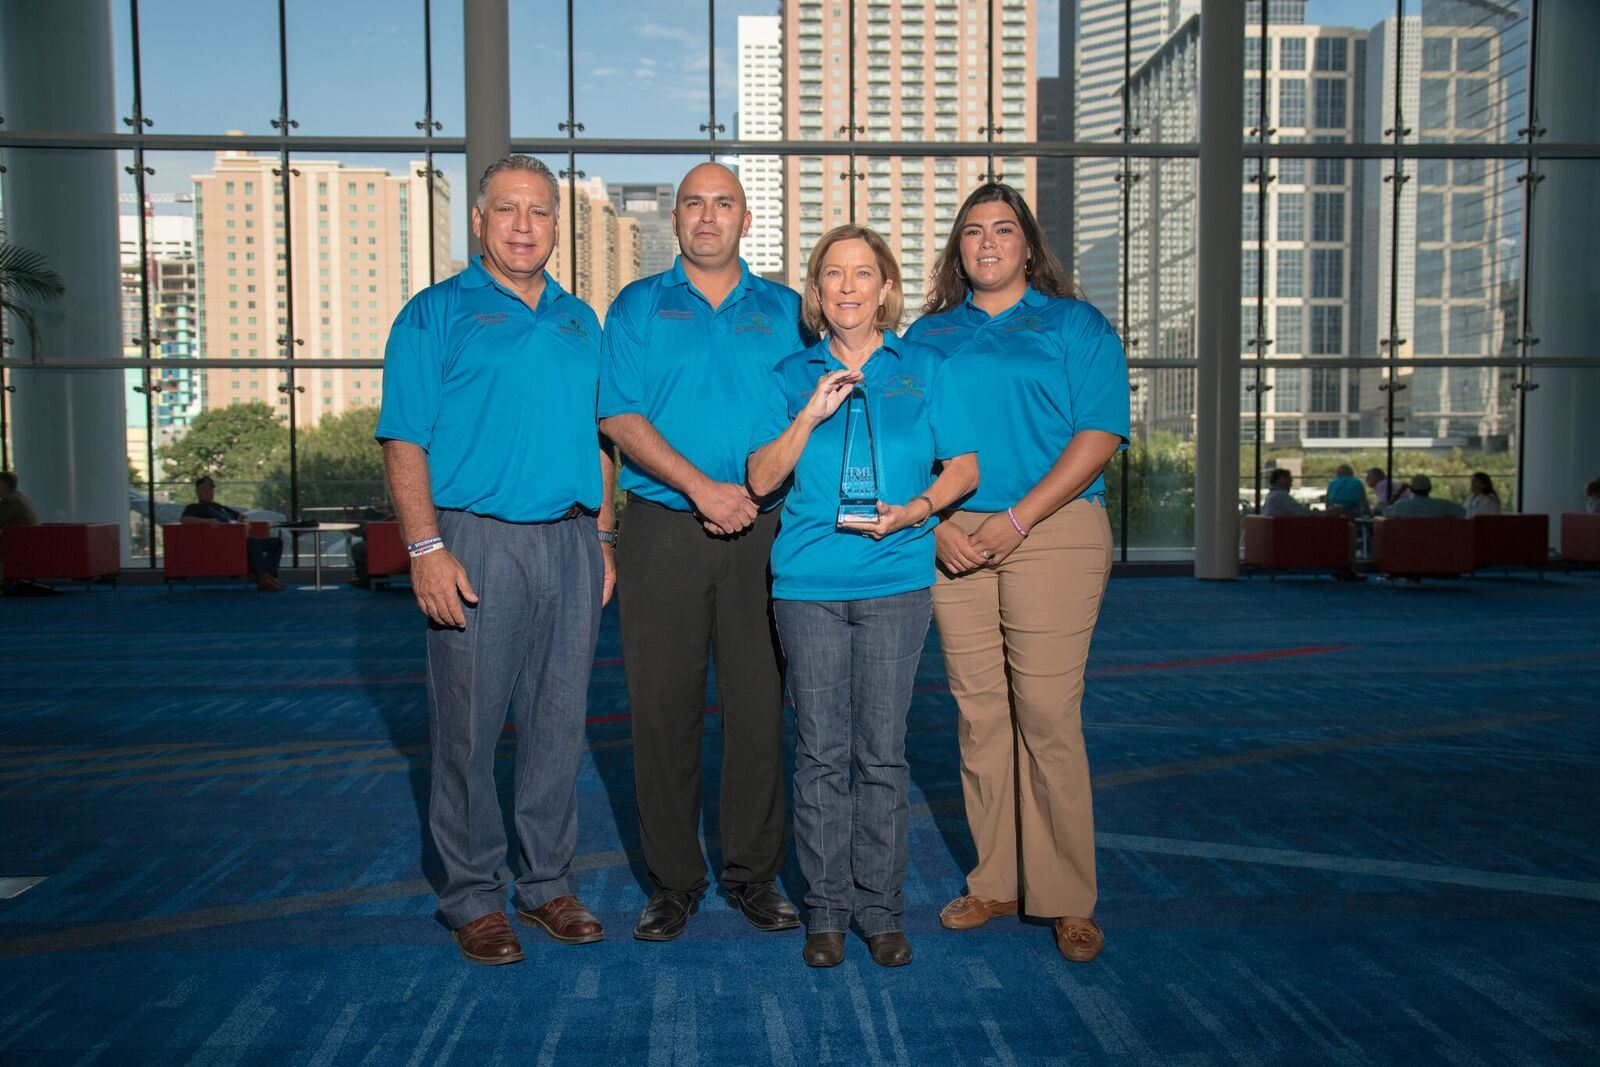 4 Laguna Vista employees in blue shirts with one holding award at event